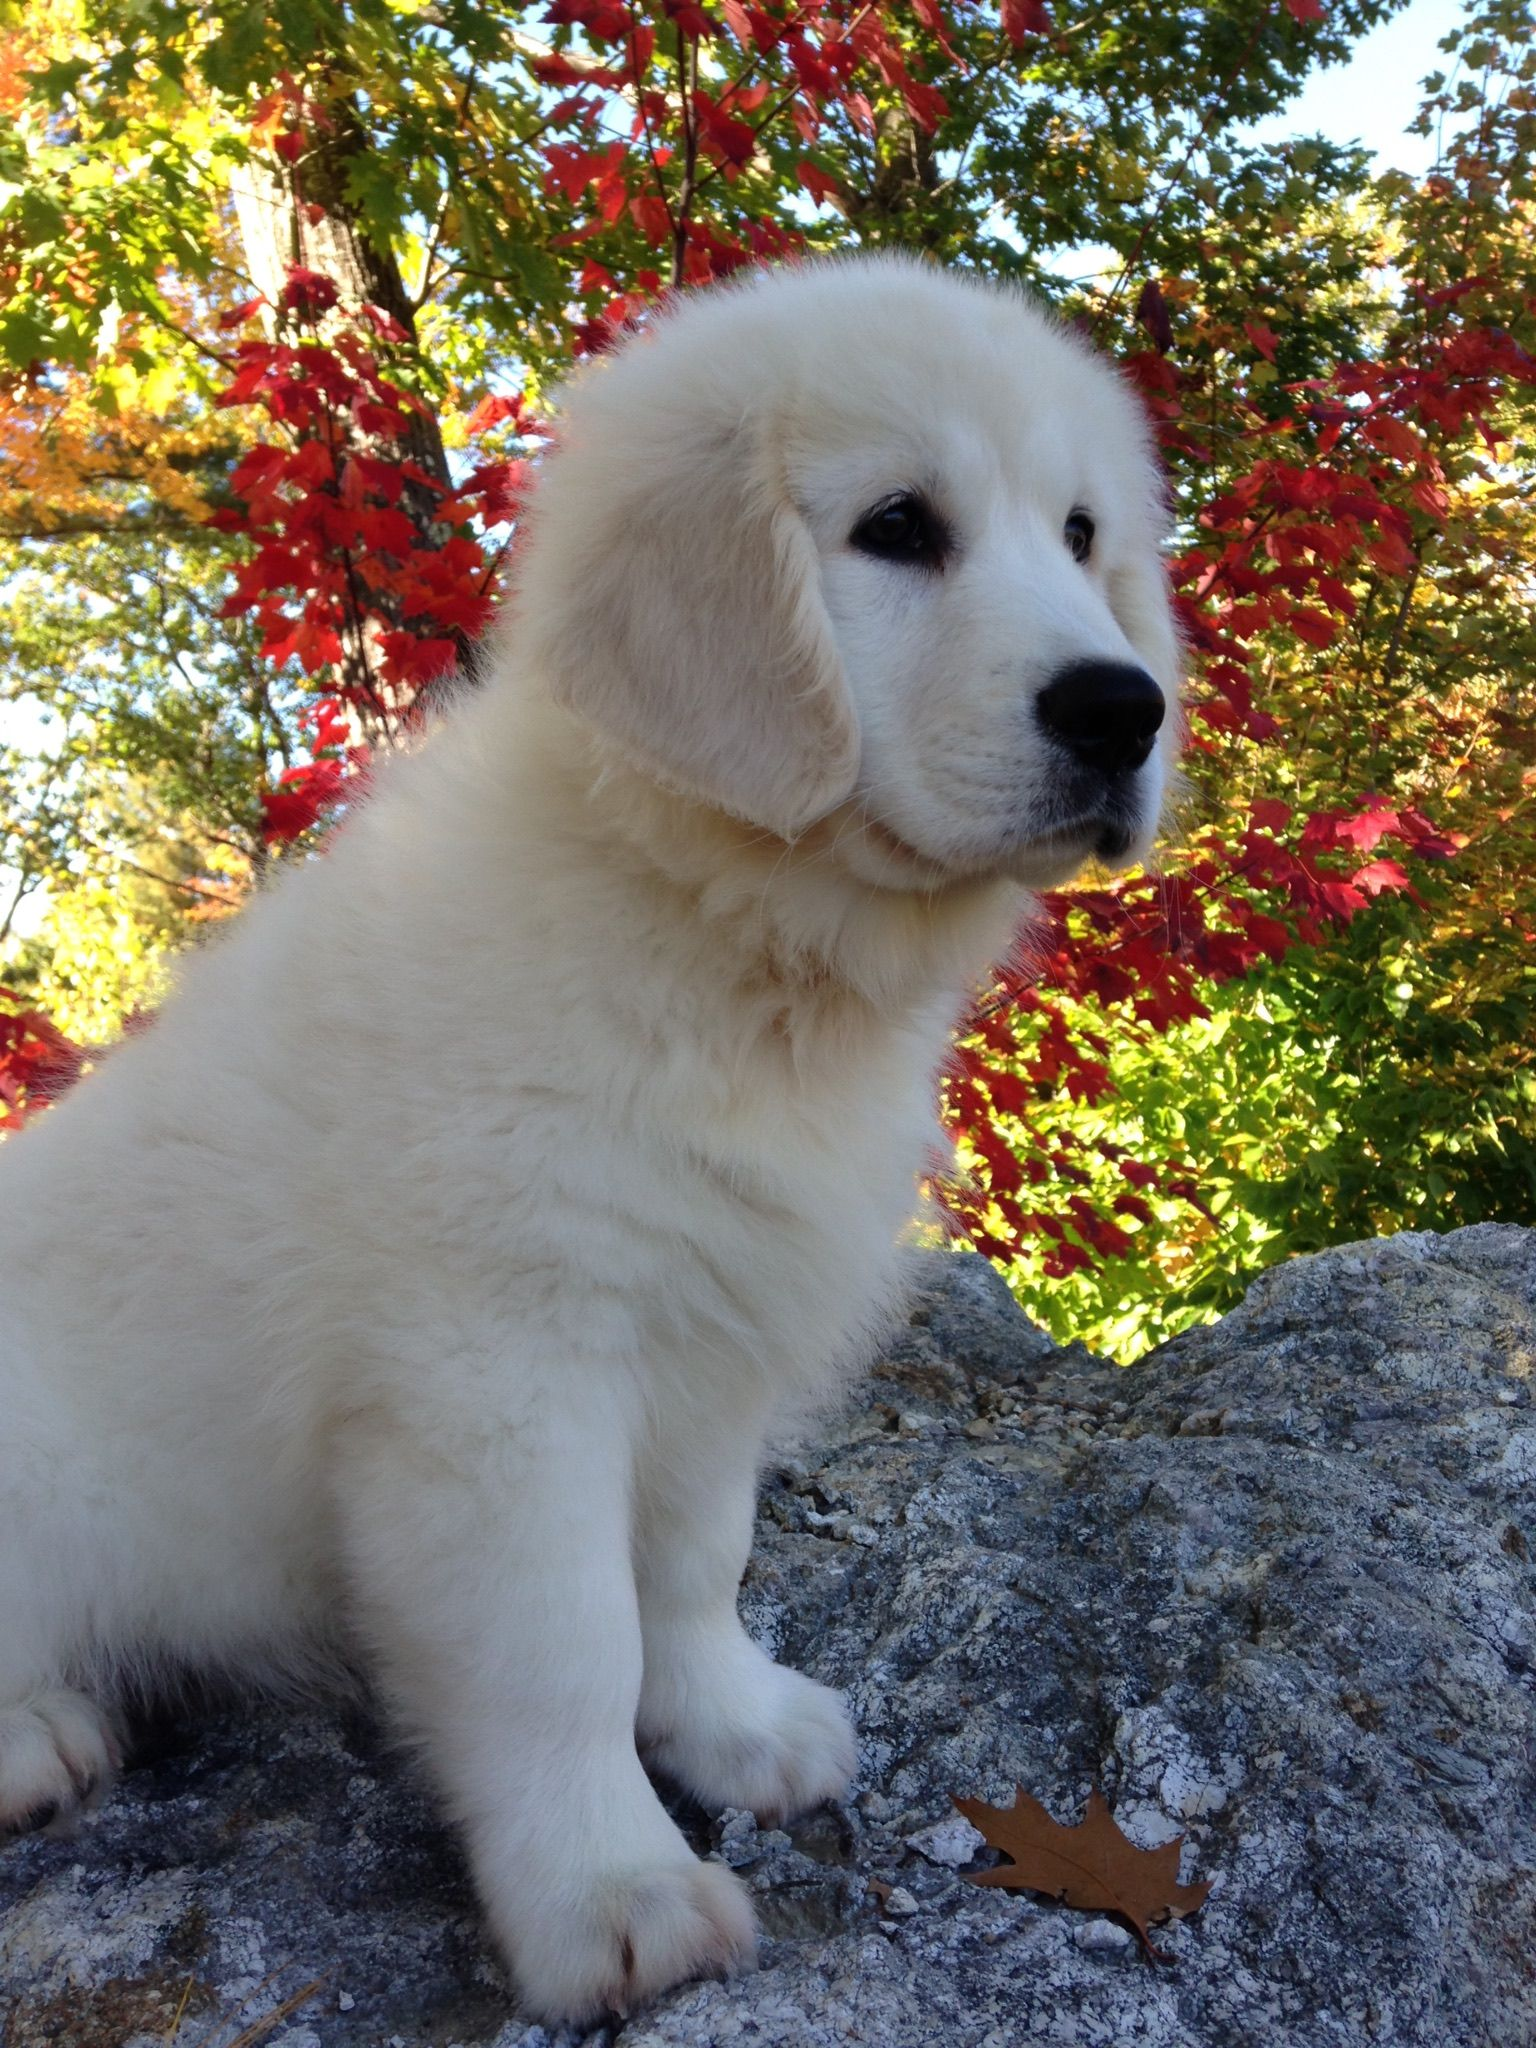 English Cream Retriever Dogs Puppies Puppy Love English Cream Retriever Puppies For Sale In Southern Maine Retriever Dog Retriever Puppy Puppies For Sale